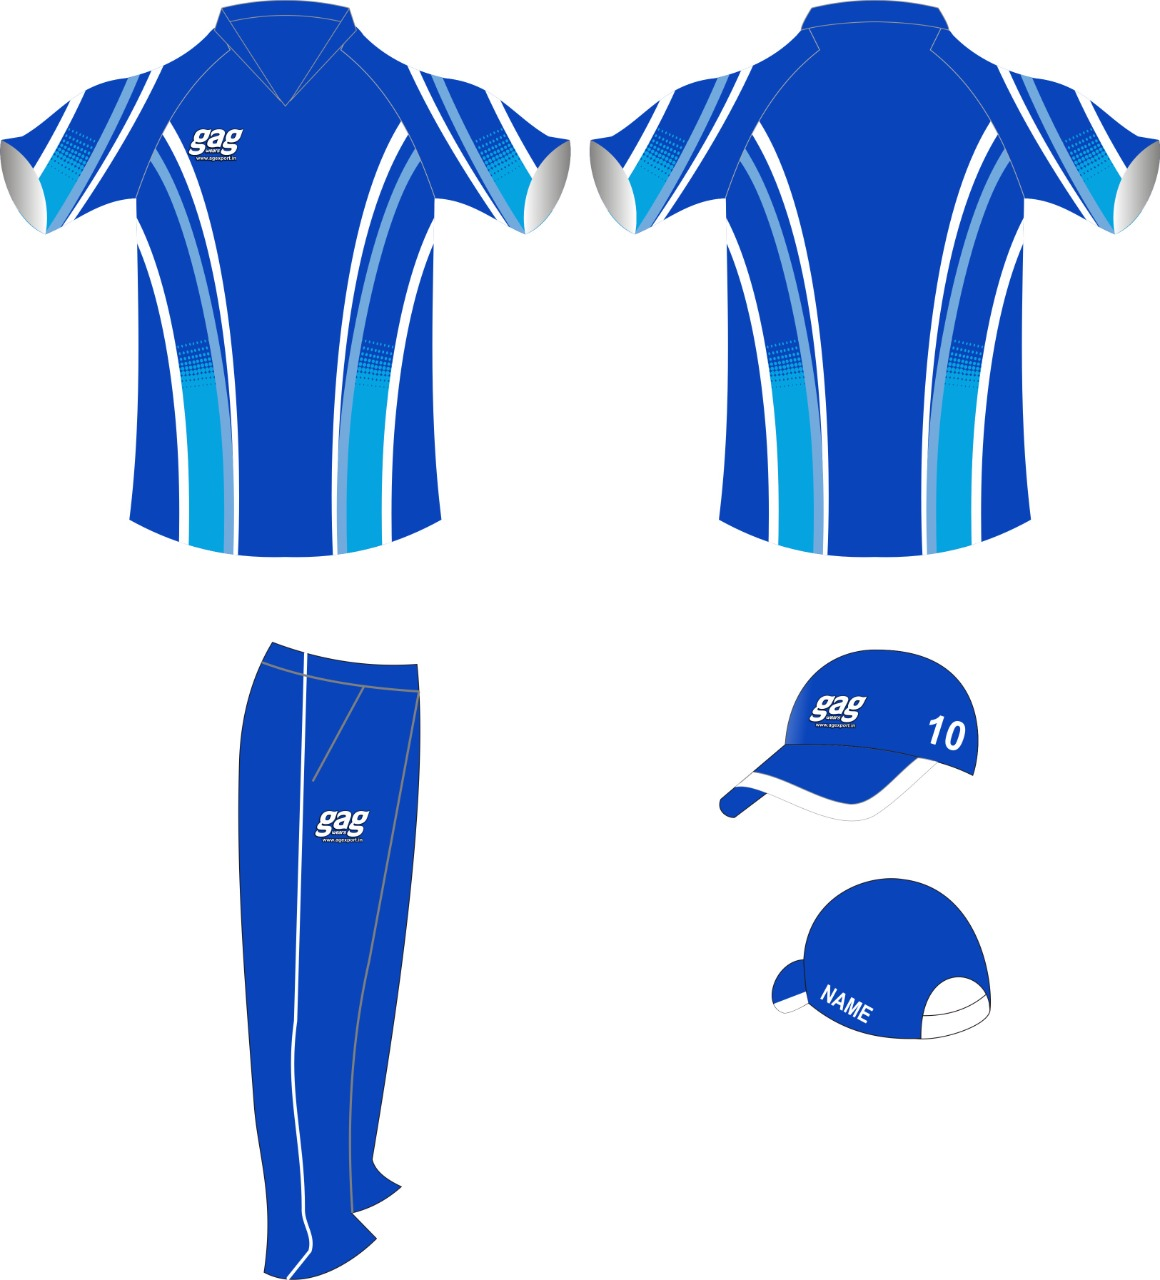 Cricket Shirts Manufacturers in Jalandhar in Bangladesh